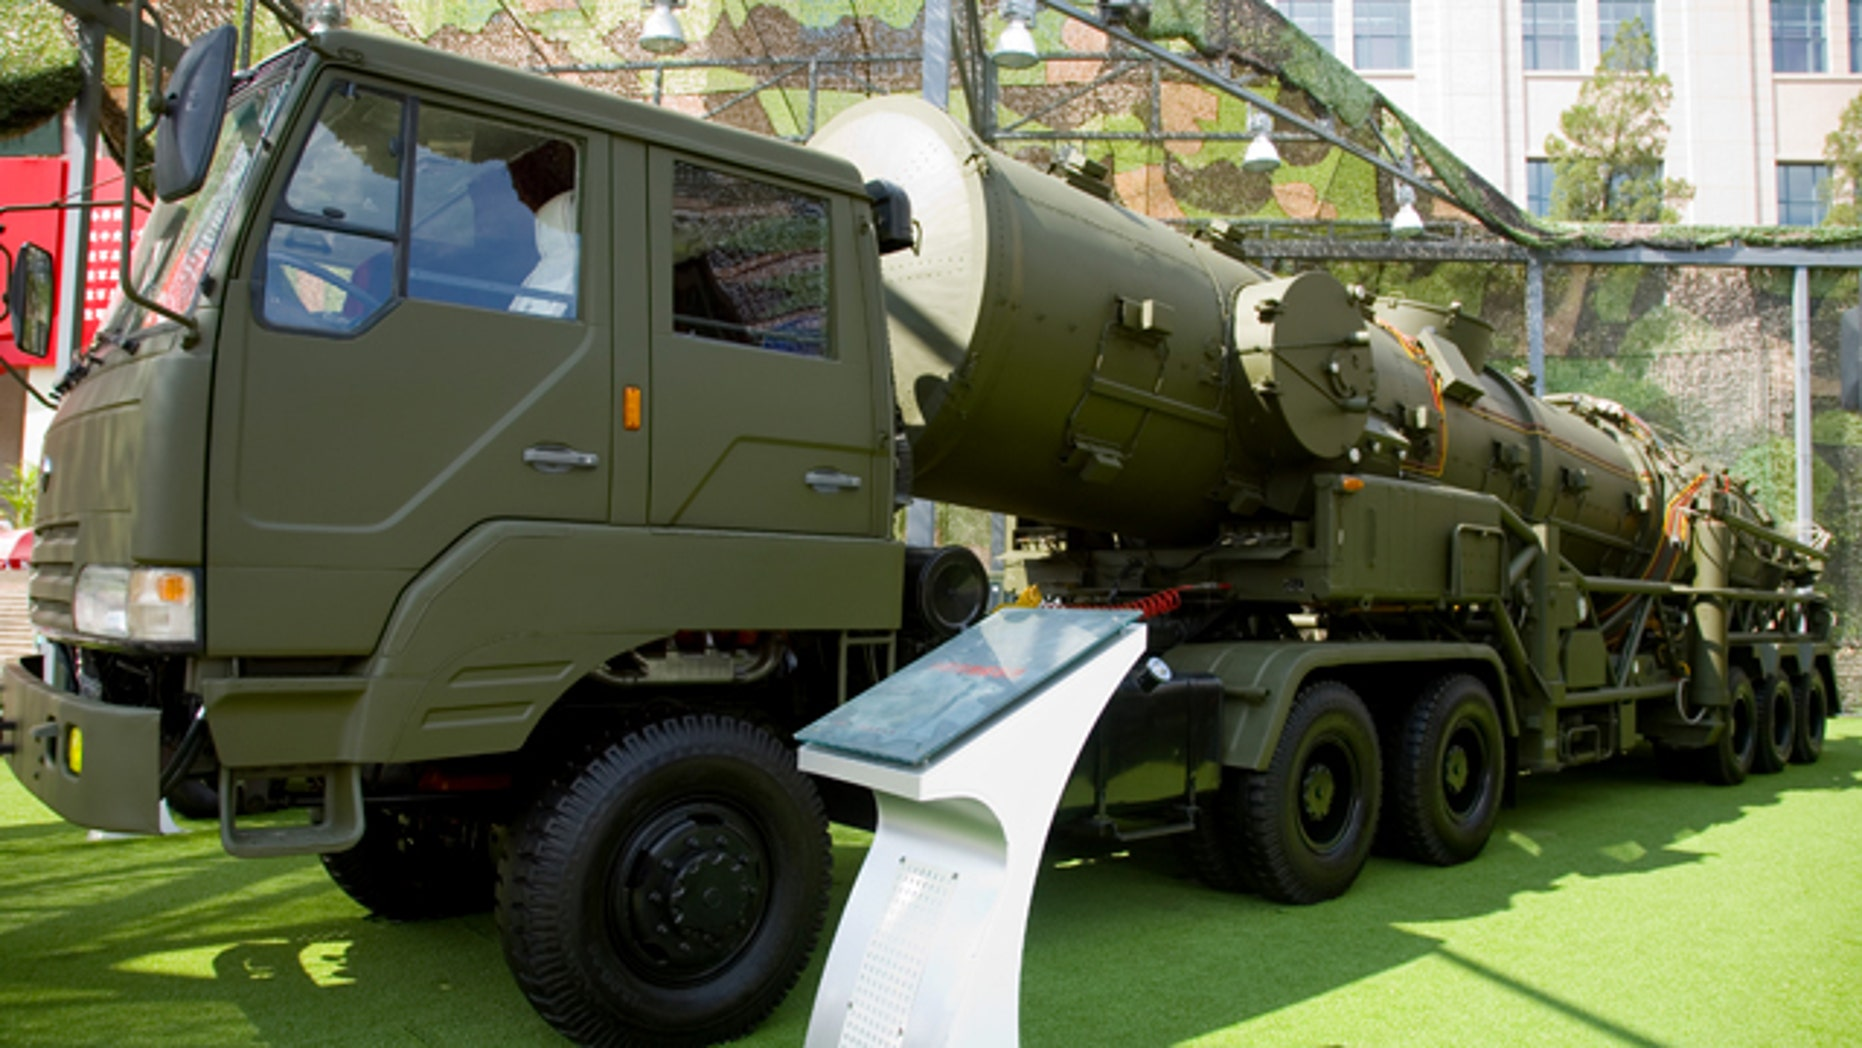 The Dong Feng 21A and launcher vehicle are displayed at the Beijing Military Museum. China is reportedly working on developing the world's first antiship ballistic missile based on a similar design.